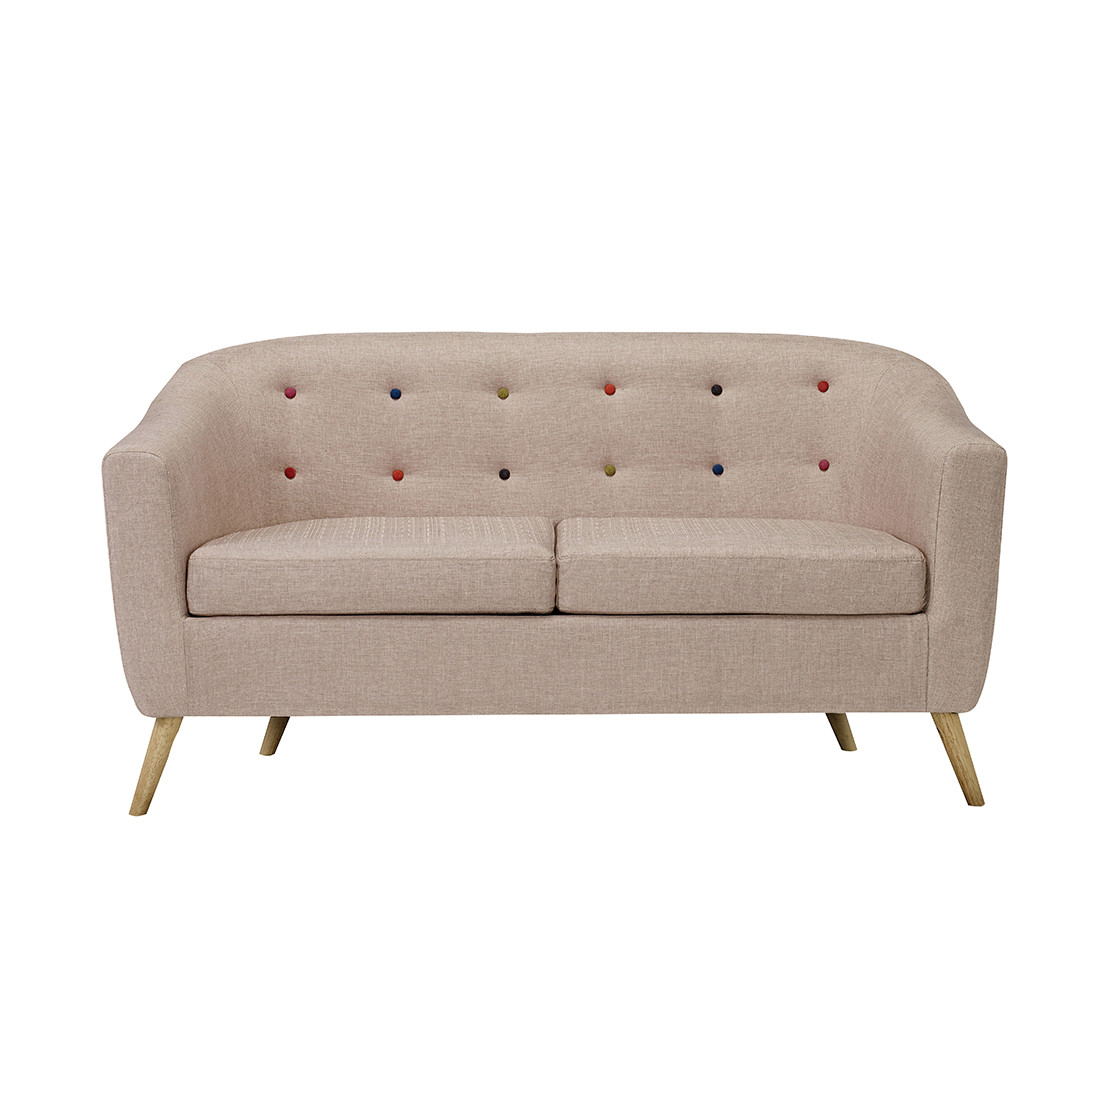 Hudson Sofa With Buttons Beige Sofas Living Room